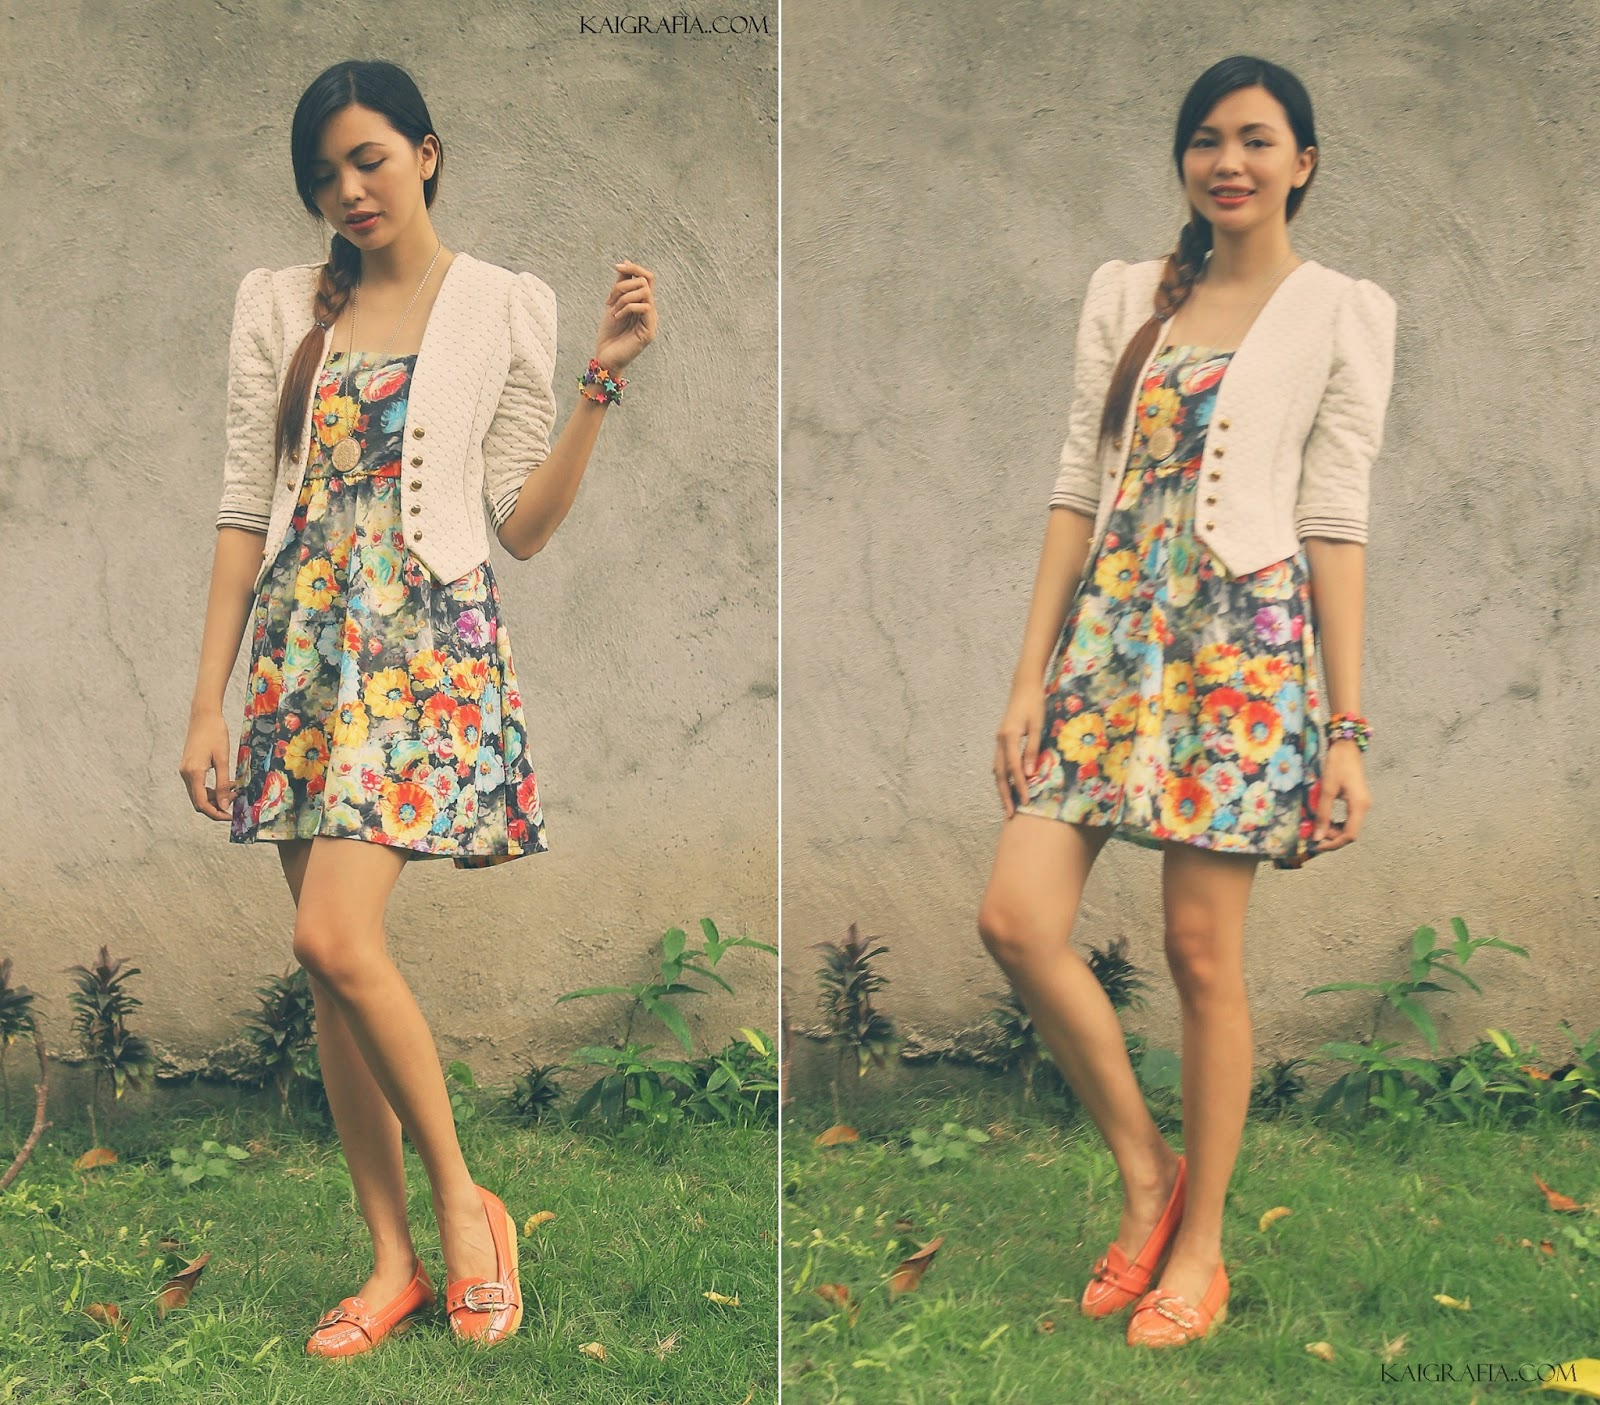 peach shoes and floral dress